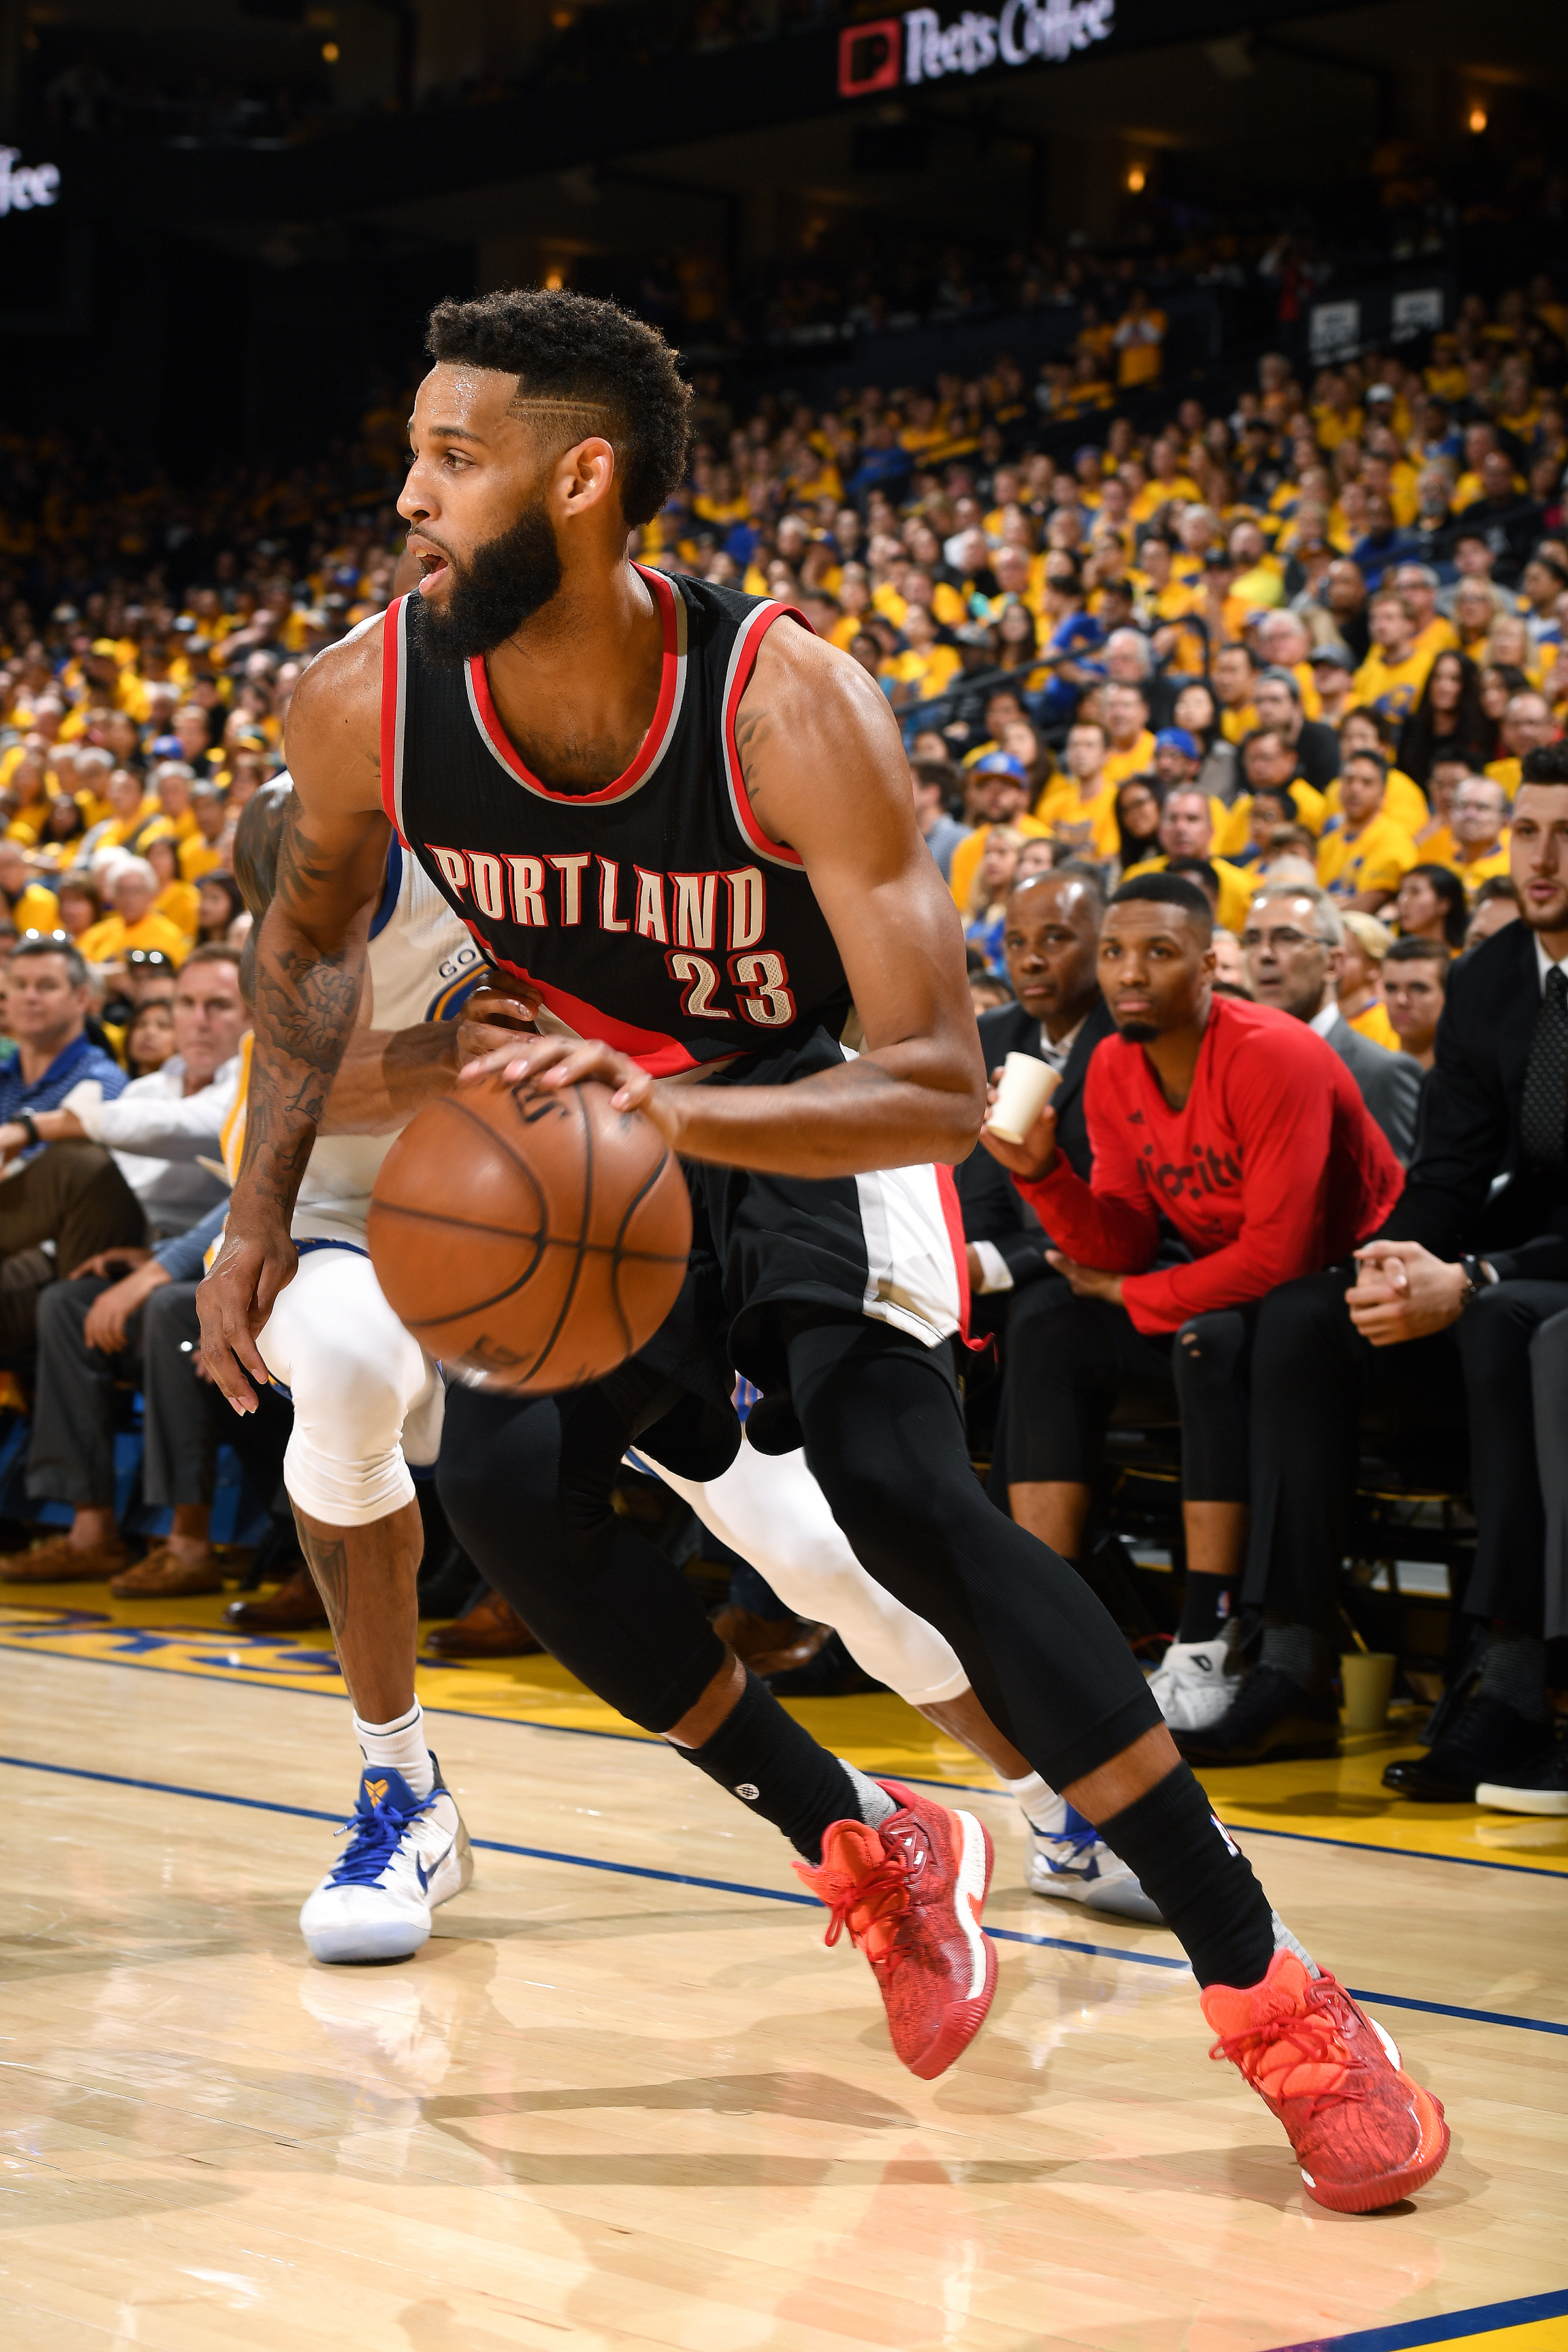 669196148-portland-trail-blazers-v-golden-state-warriors-game-one.jpg